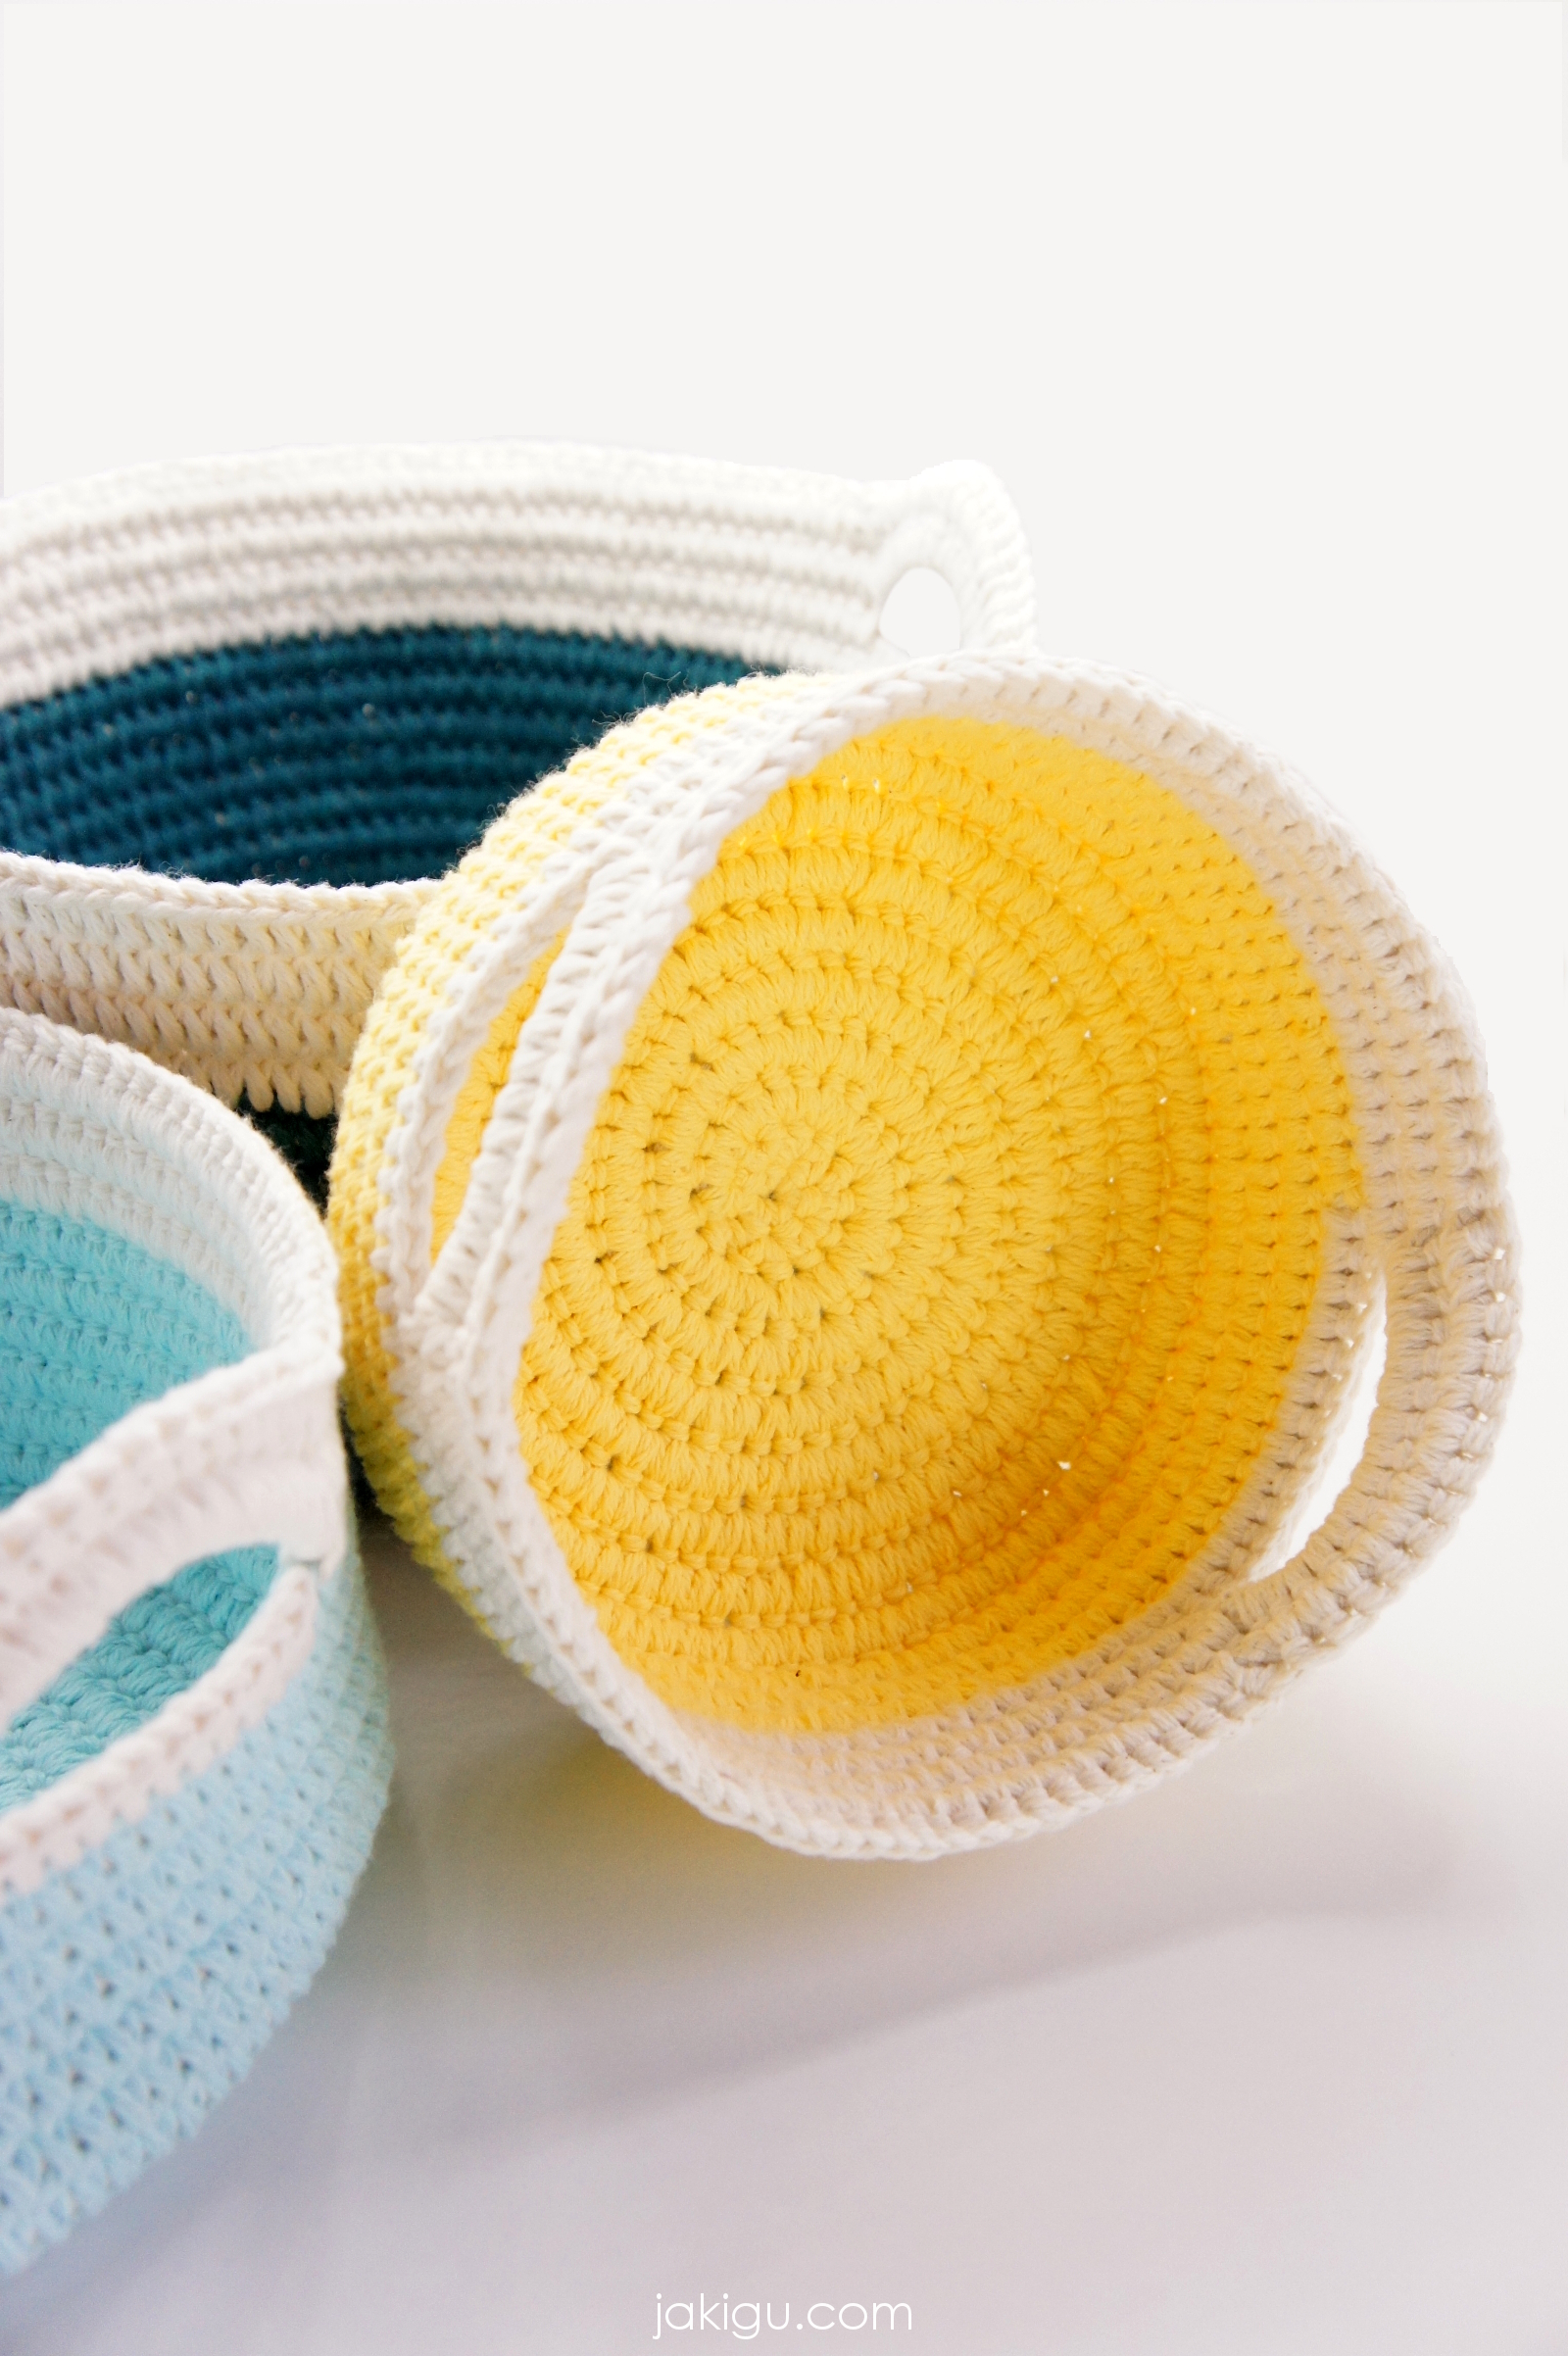 Crochet pattern - a set of stacking baskets with handles